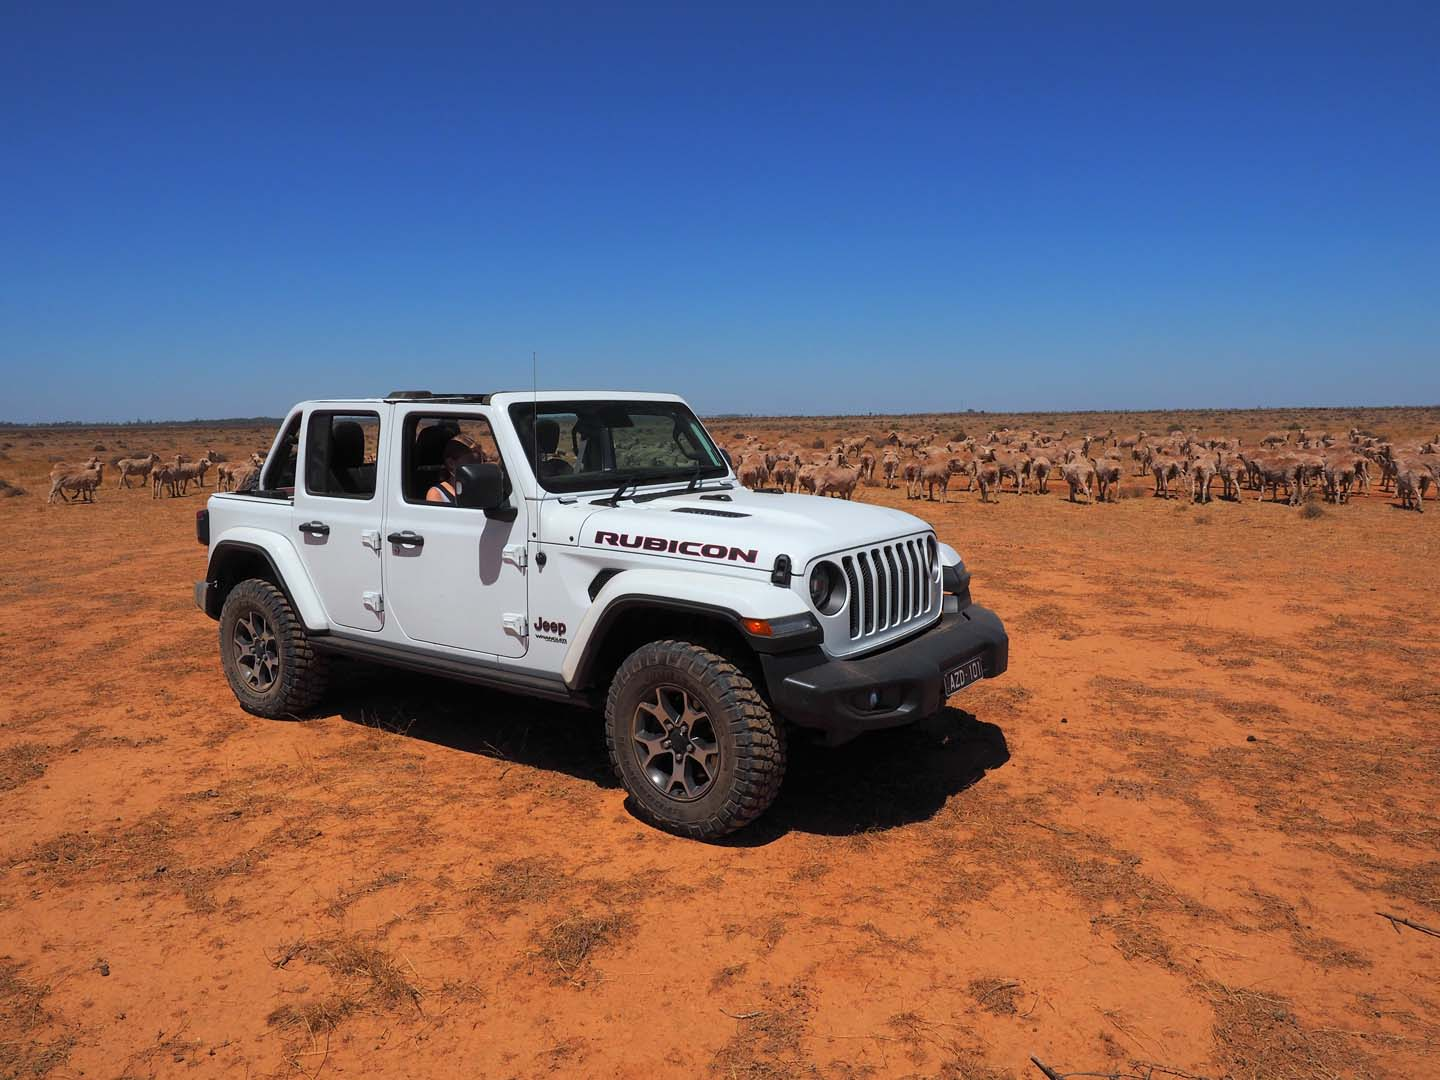 Feature Jeep Wrangler Rubicon - Part 1 of 5